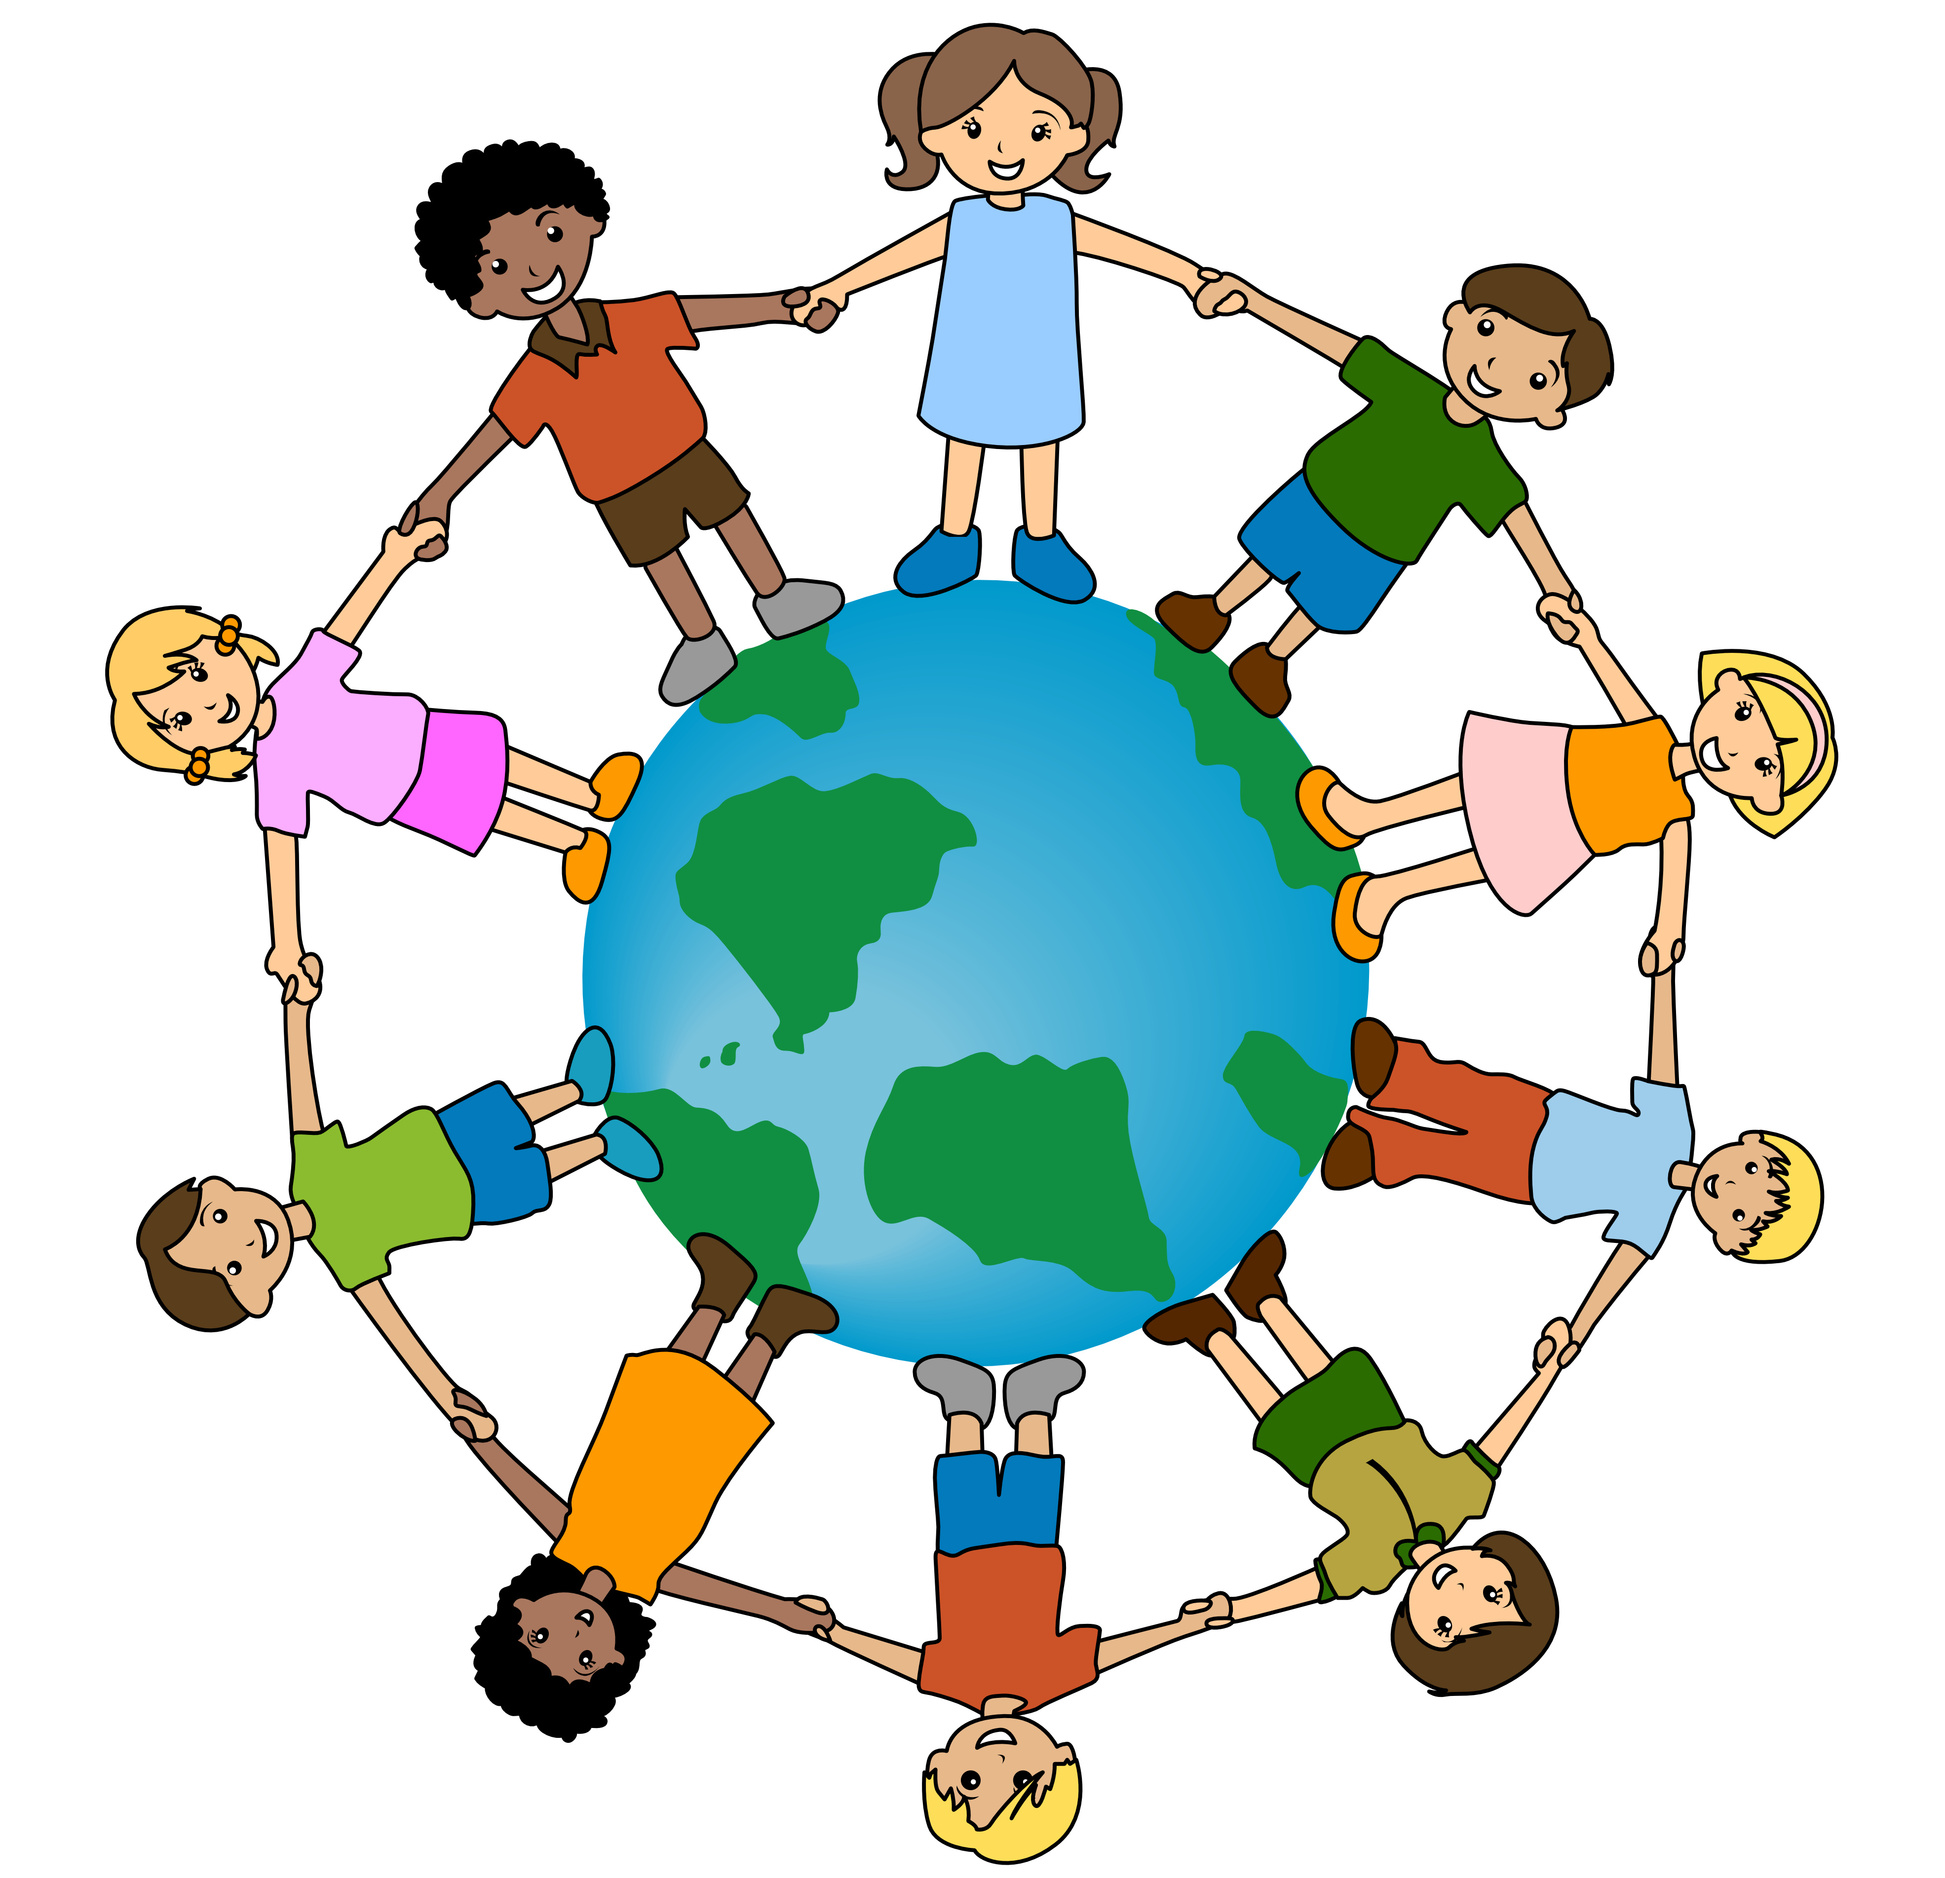 The world around us clipart freeuse The world around us clipart - ClipartNinja freeuse